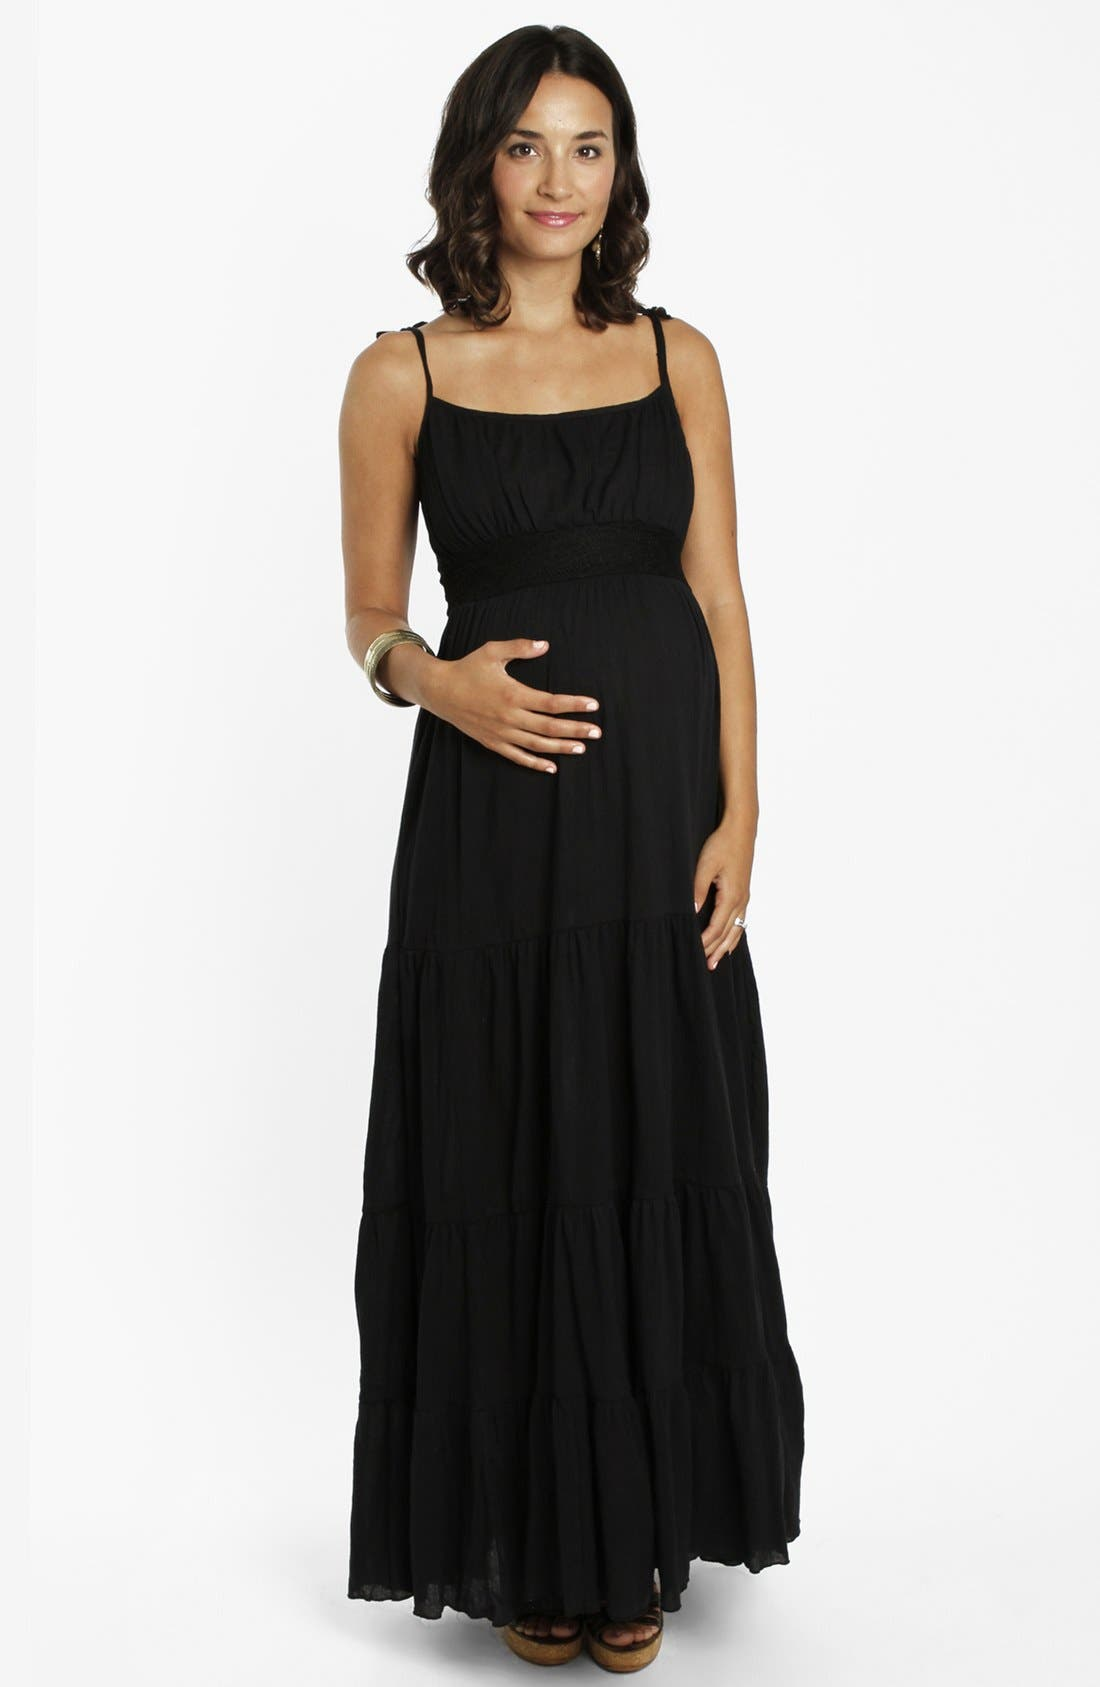 Alternate Image 1 Selected - Everly Grey 'Poppy' Tiered Maternity Maxi Dress